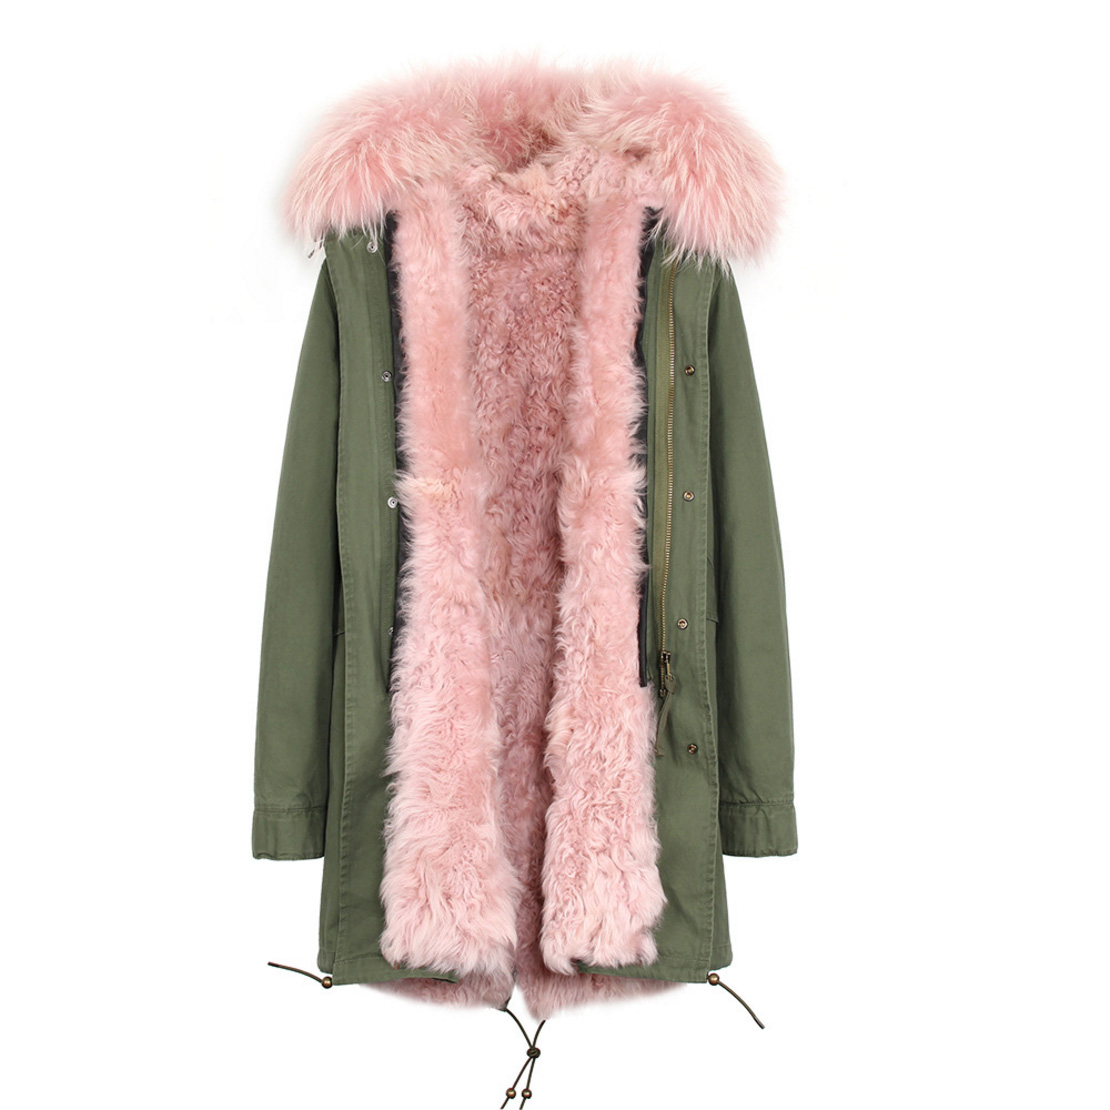 Raccoon Fur Trimmed Hooded Parka with Detachable Lamb Fur Liner 132-4